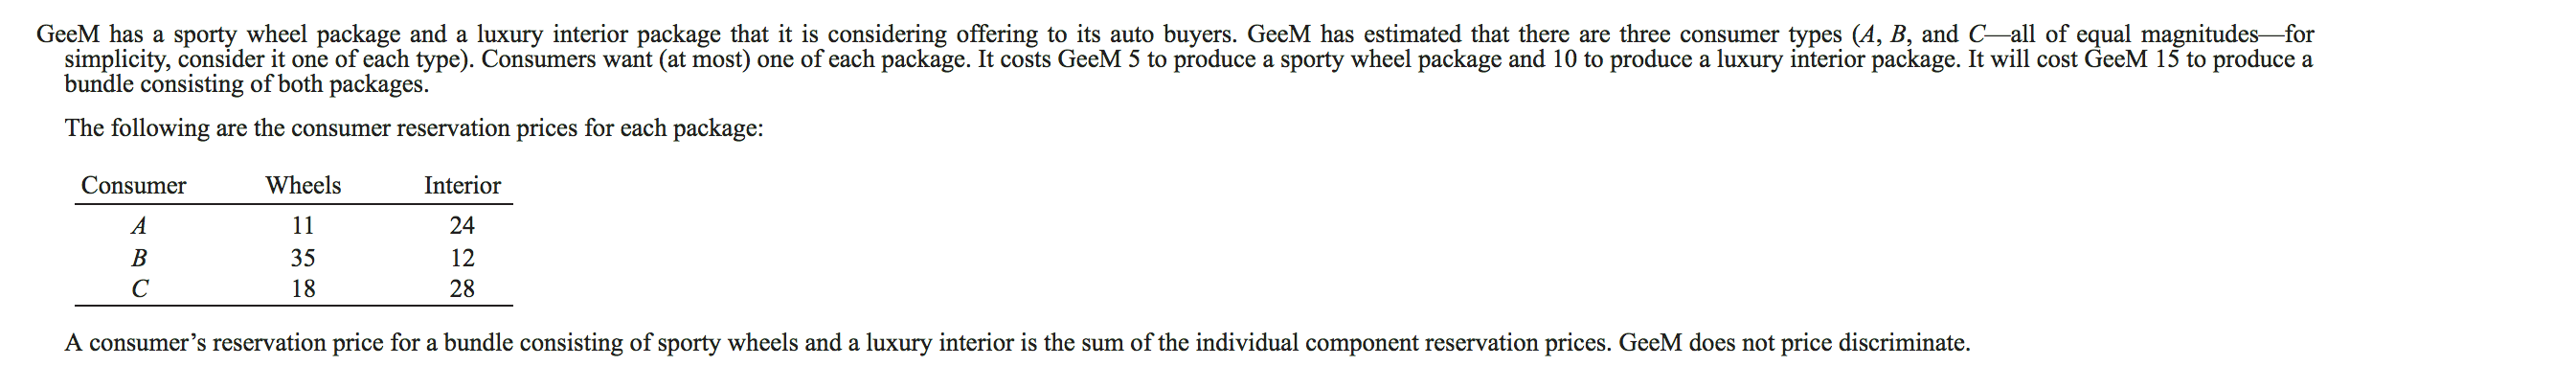 GeeM has a sporty wheel package and a luxury interior package that it is considering offering to its auto buyers. GeeM has estimated that there are three consumer types (A, B, and C-all of equal magnitudes--for simplicity, consider it one of each type). Consumers want (at most) one of each package. It costs GeeM 5 to produce a sporty wheel package and 10 to produce a luxury interior package. It will cost GeeM 15 to produce a bundle consisting of both packages. The following are the consumer reservation prices for each package: Wheels Consumer Interior A 11 24 В 35 12 С 18 28 A consumer's reservation price for a bundle consisting of sporty wheels and a luxury interior is the sum of the individual component reservation prices. GeeM does not price discriminate